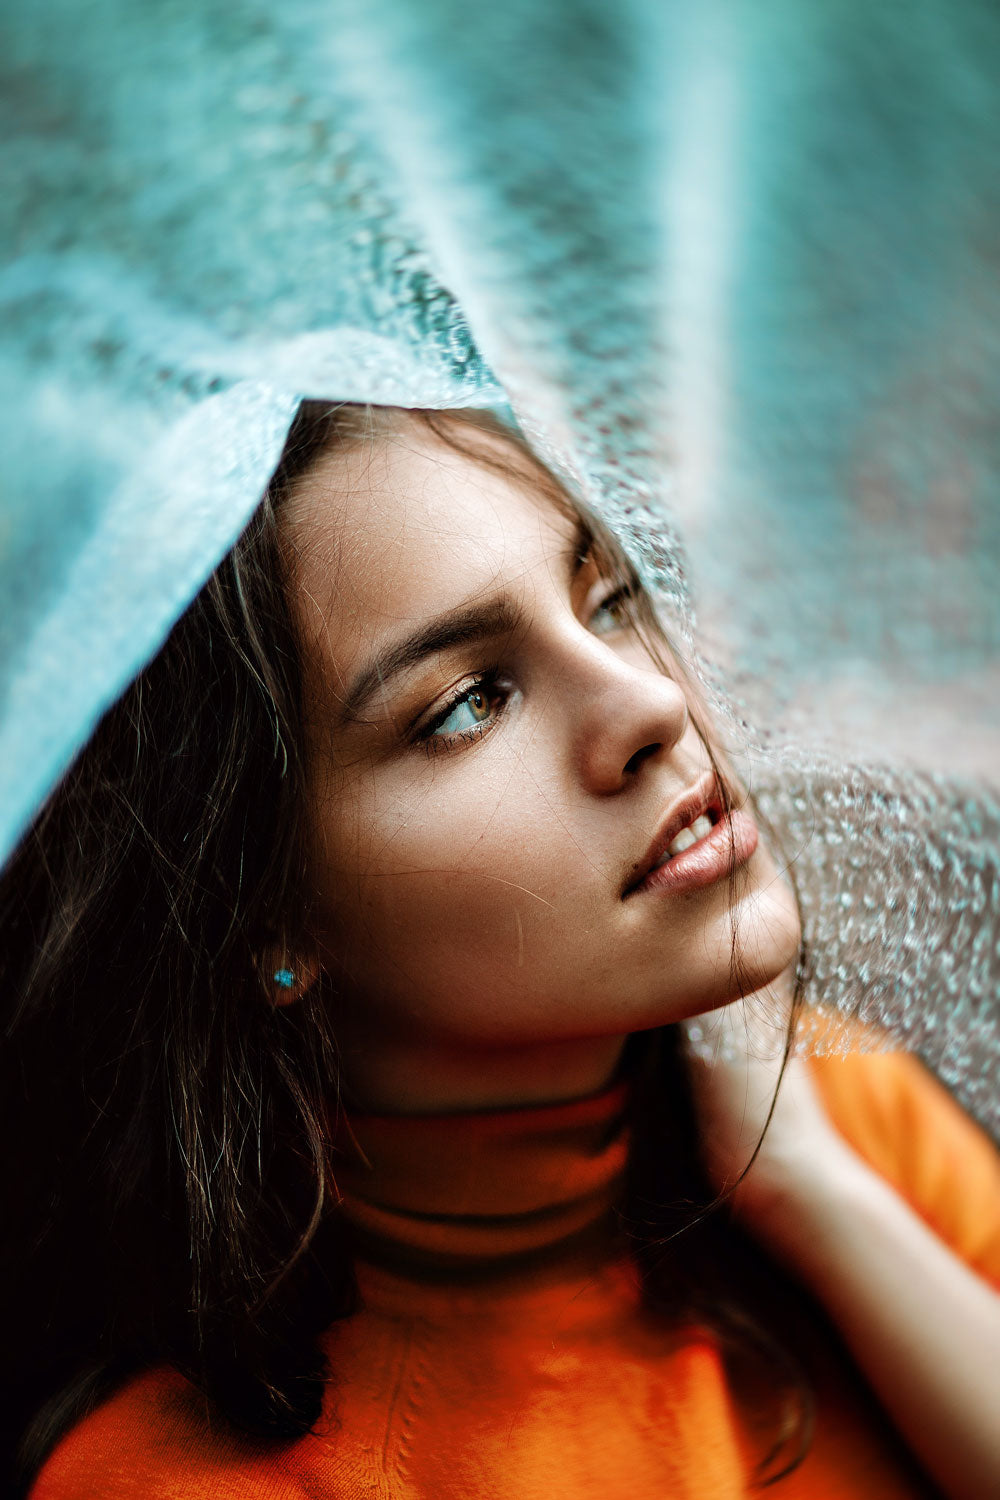 Portrait of dark haired model in complementary colors